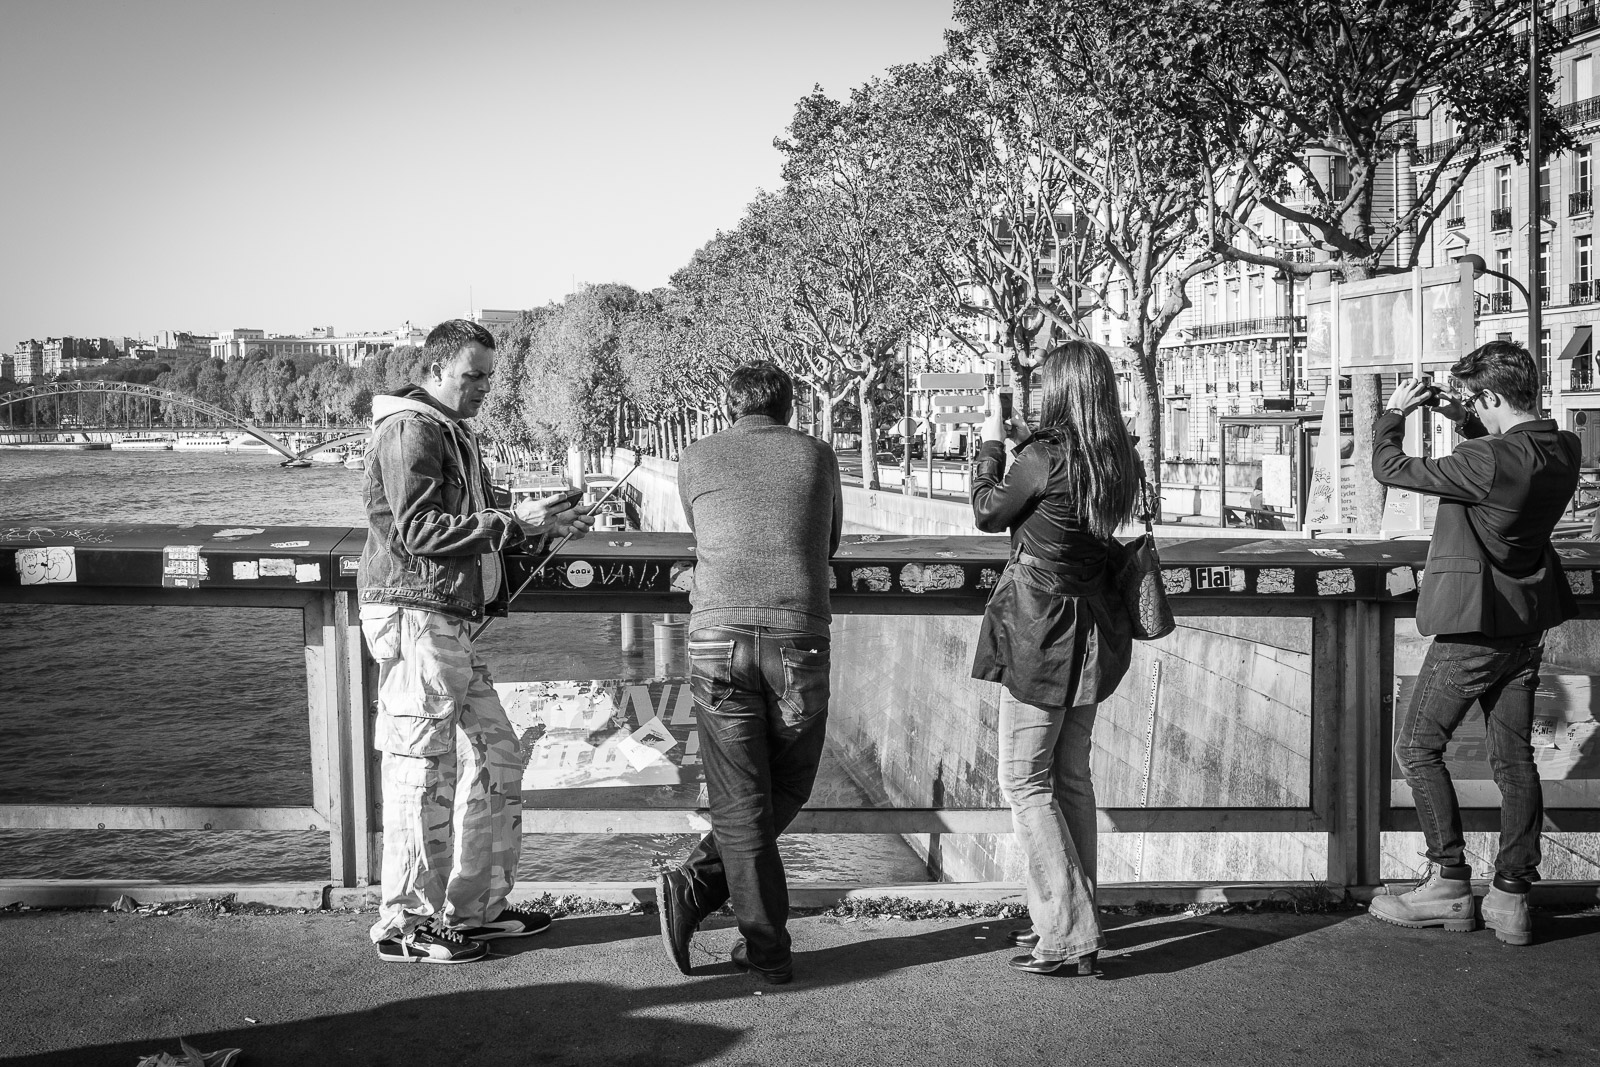 PARIS – Mobile society